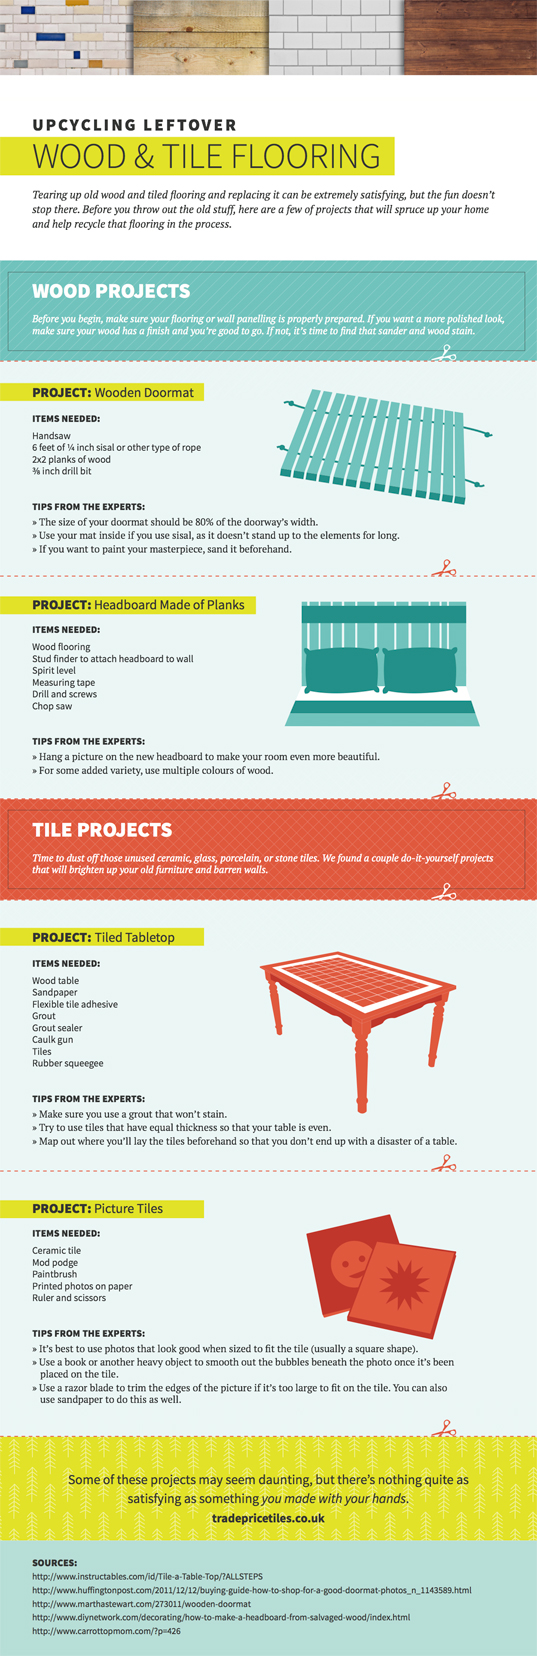 wood flooring, recycled materials, green design, sustainable design, tile flooring, green building, diy, do it yourself, diy design, diy project, recycled wood, recycled tile, infographic